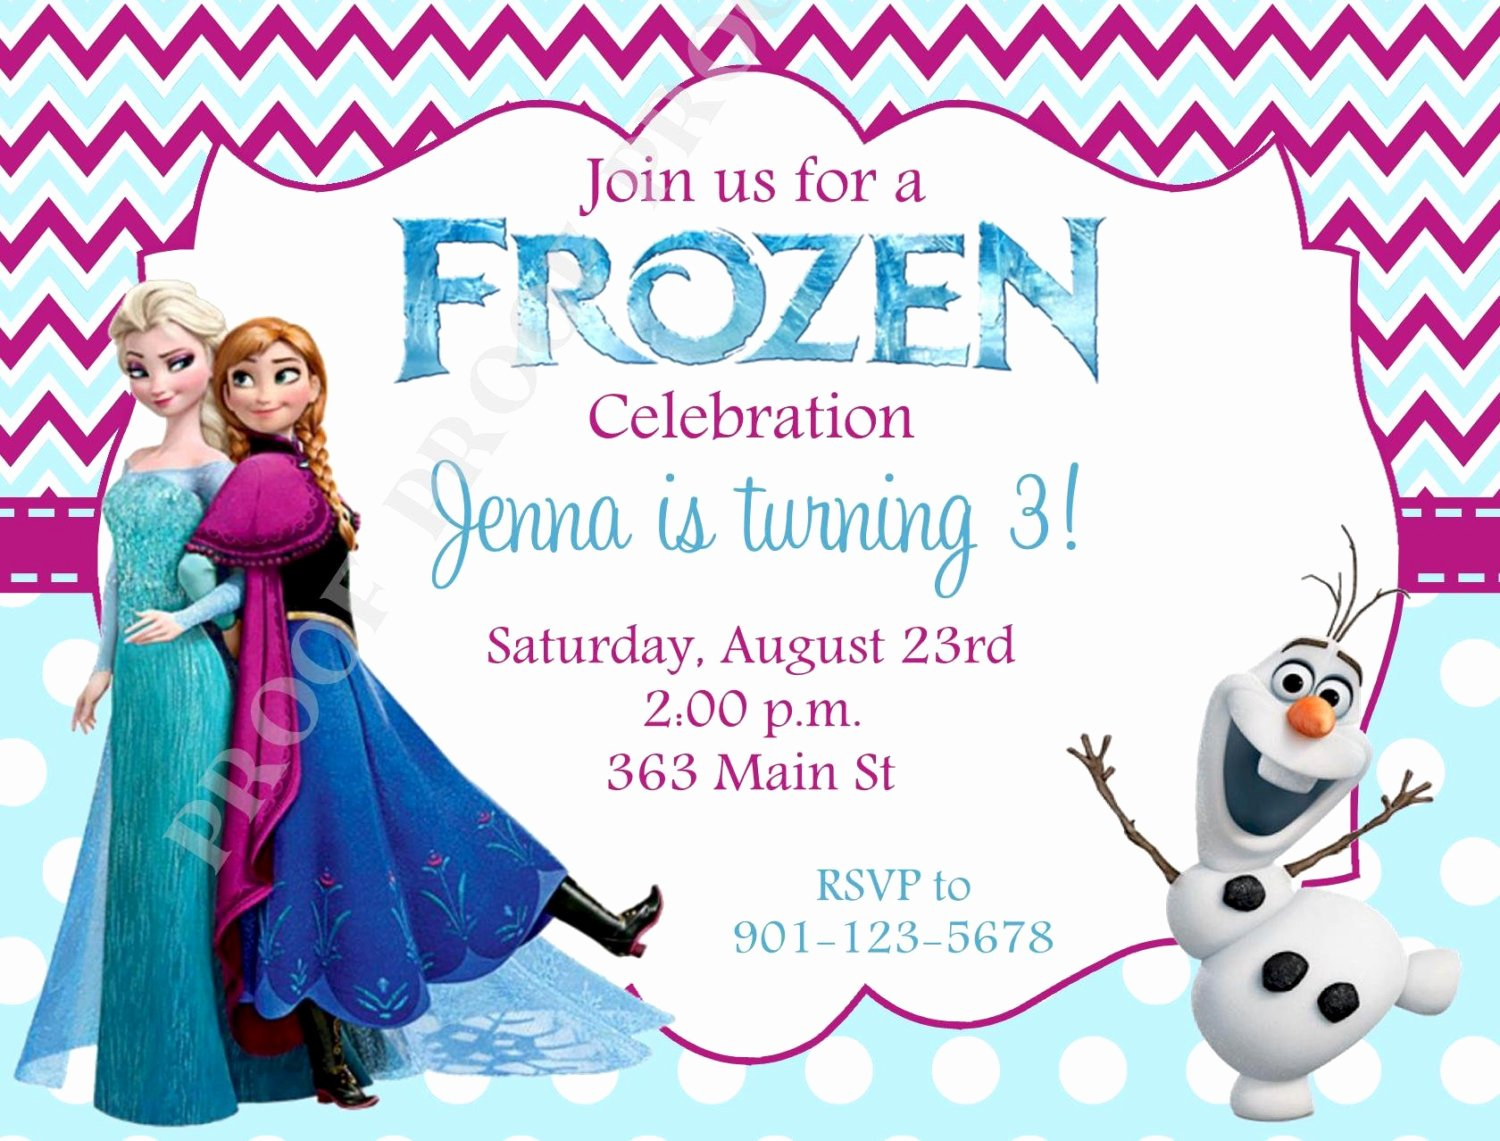 Frozen Birthday Cards Printable Luxury 10 Printed Frozen Invitations with Envelopes Free Return